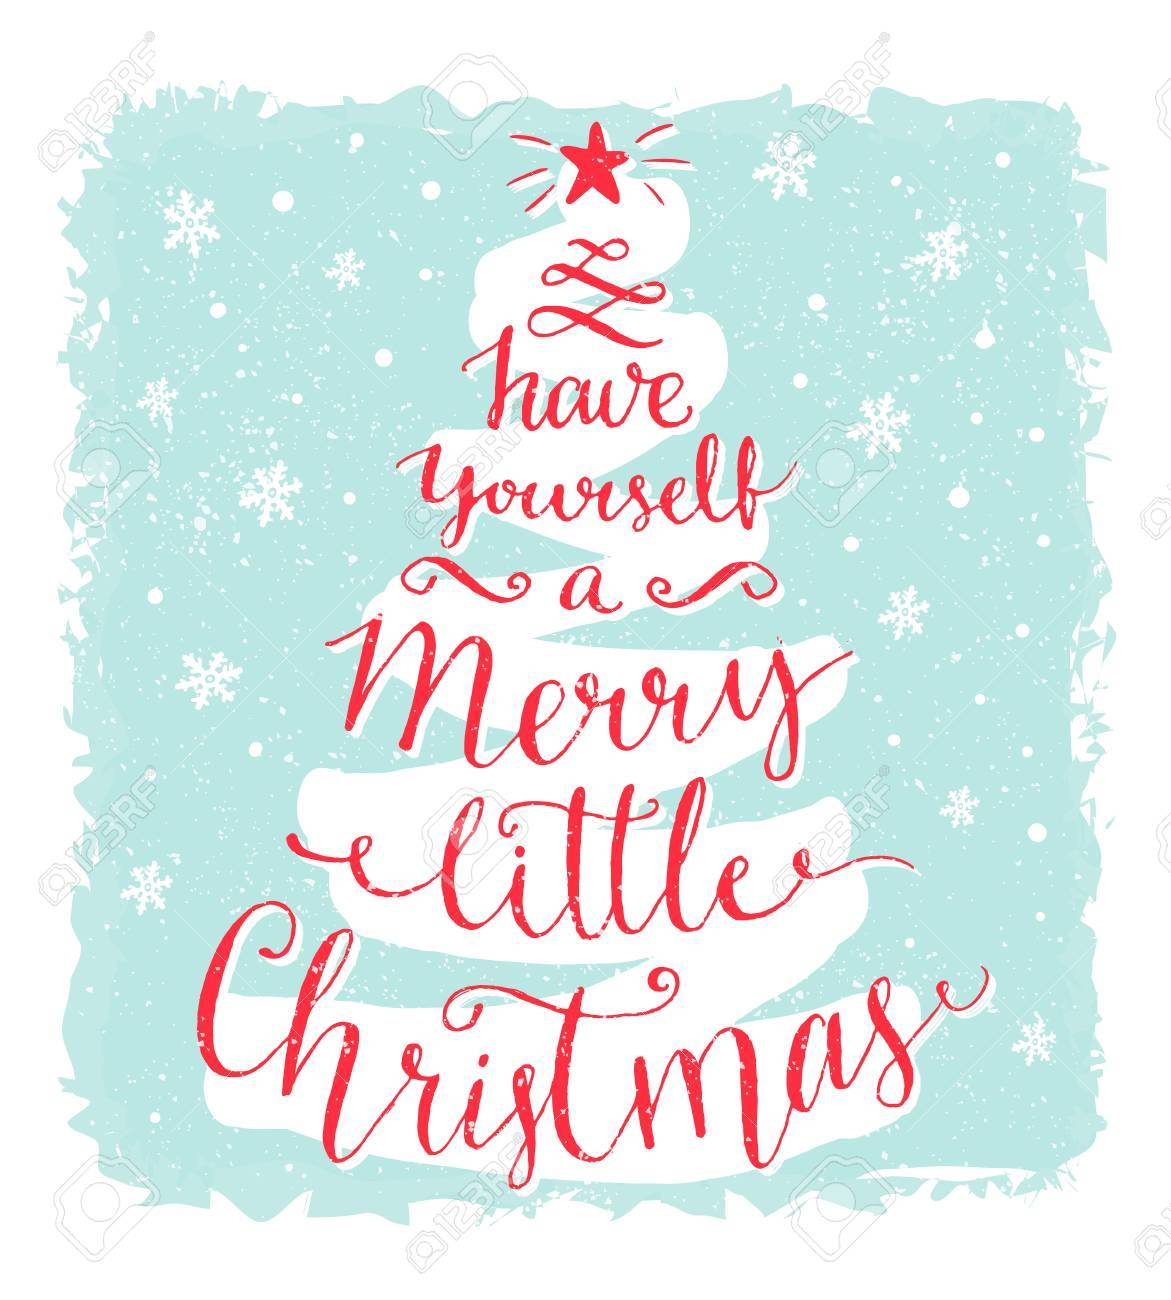 Merry Little Christmas.Have Yourself A Merry Little Christmas Greeting Card With Calligraphy